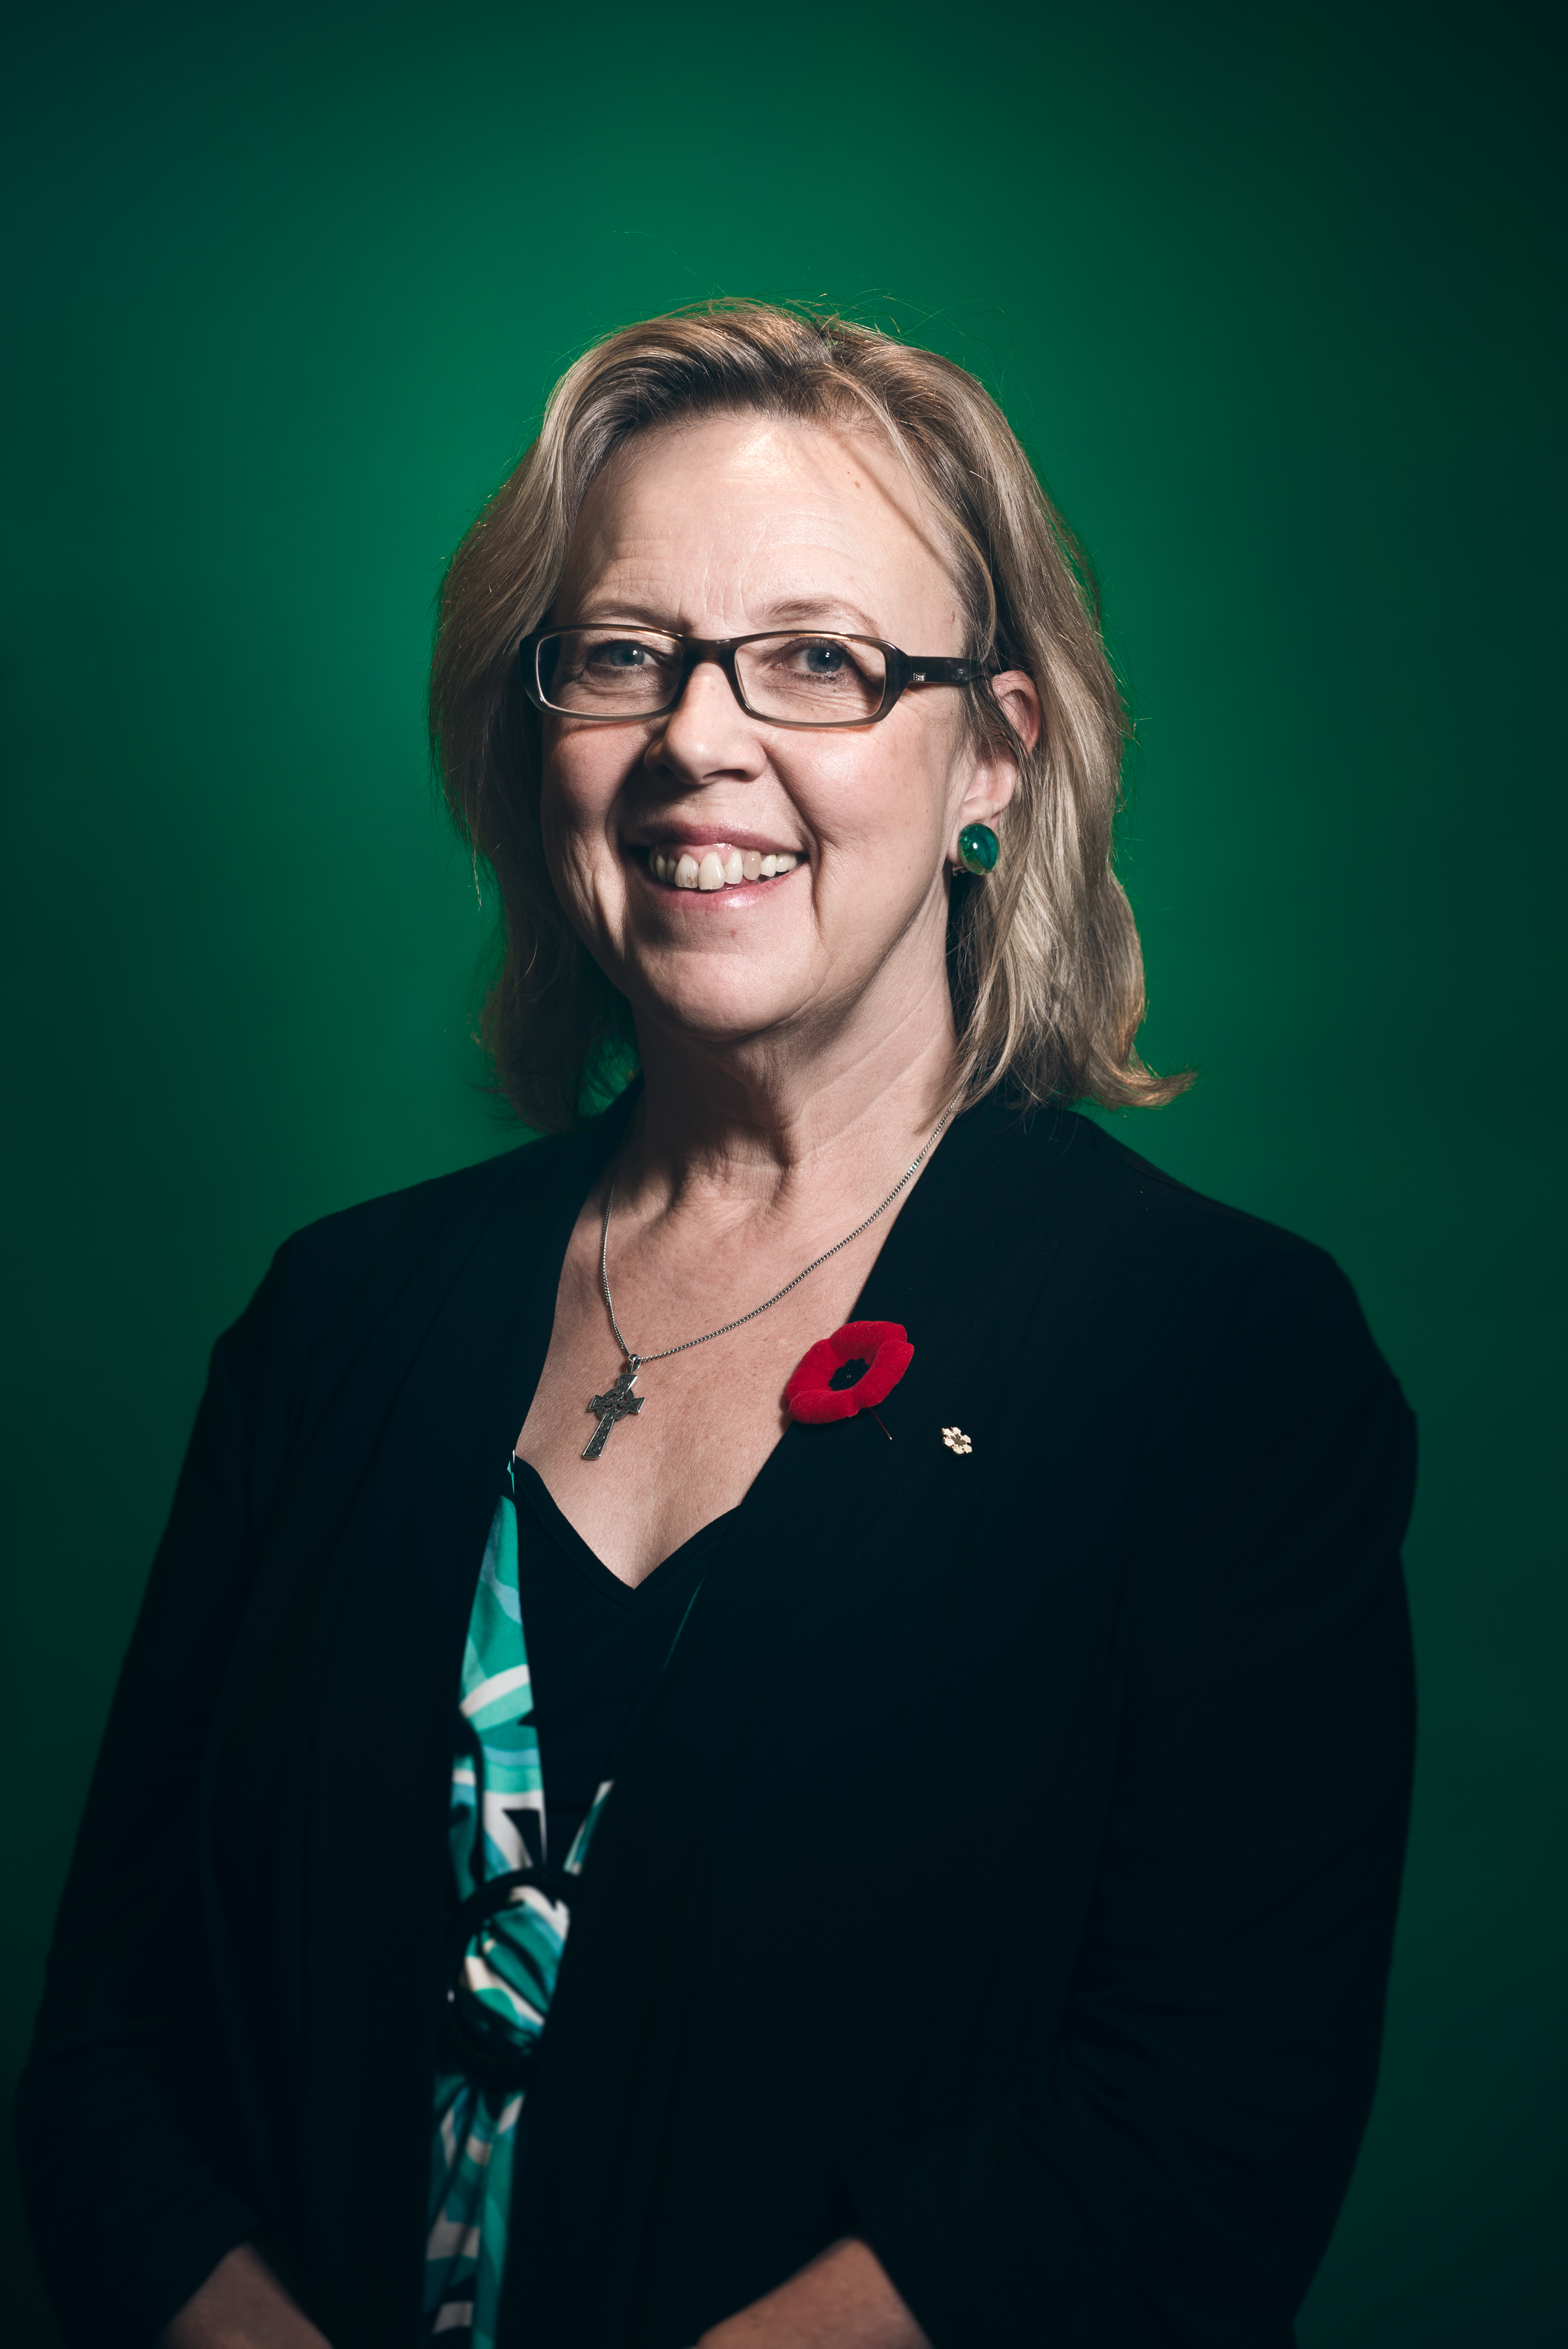 Elizabeth May, leader of the Green Party of Canada, made guaranteed livable income part of the party's campaign platform. Photo by Keith Race.